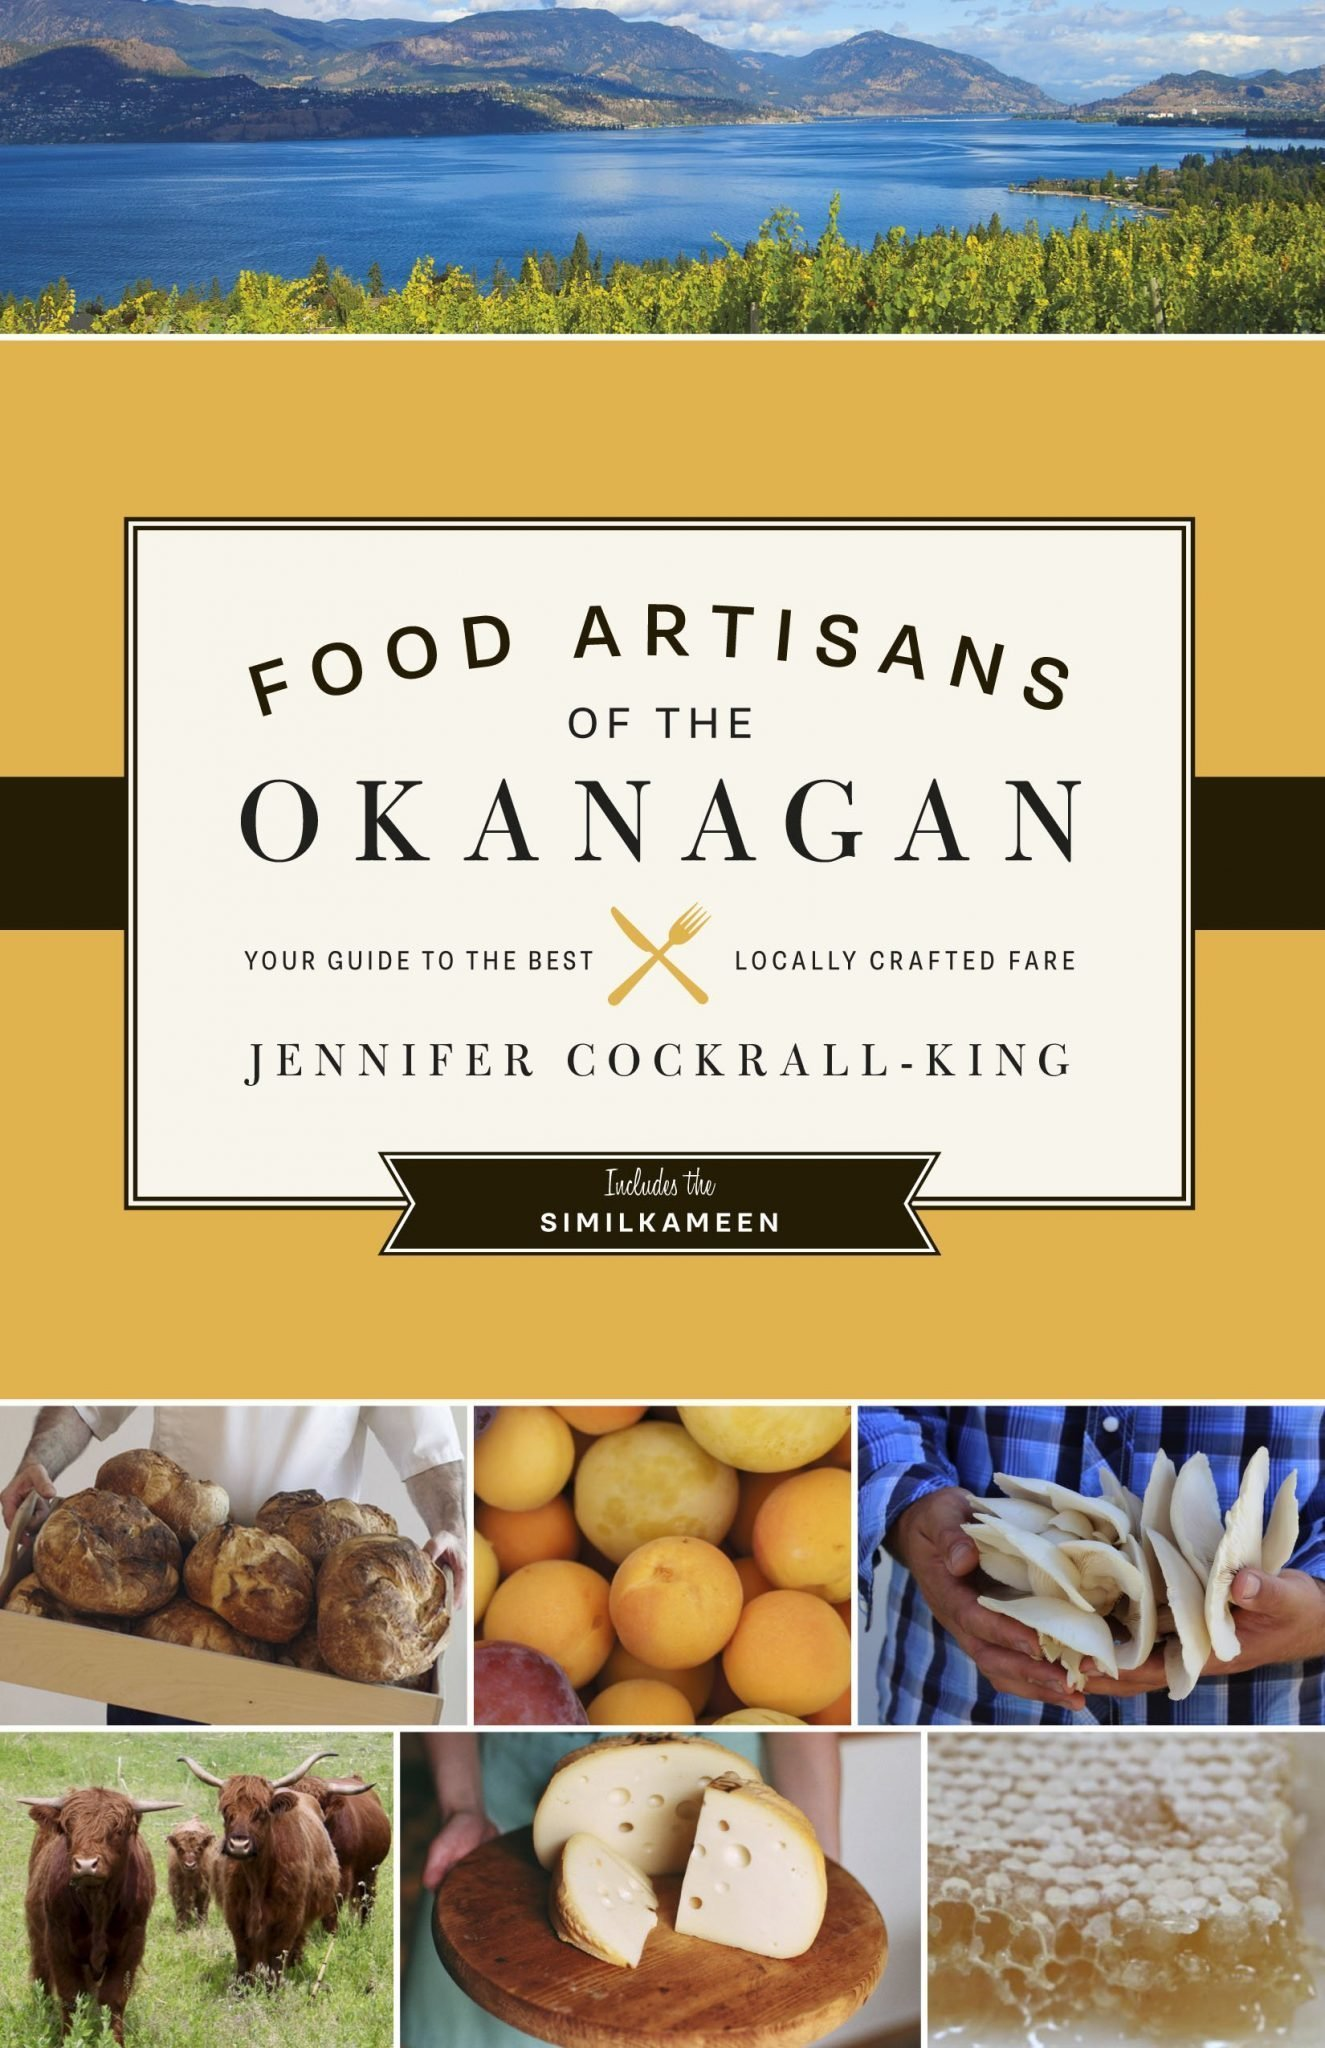 The Culinary Travel Guide's interview with Jennifer Cockrall-King